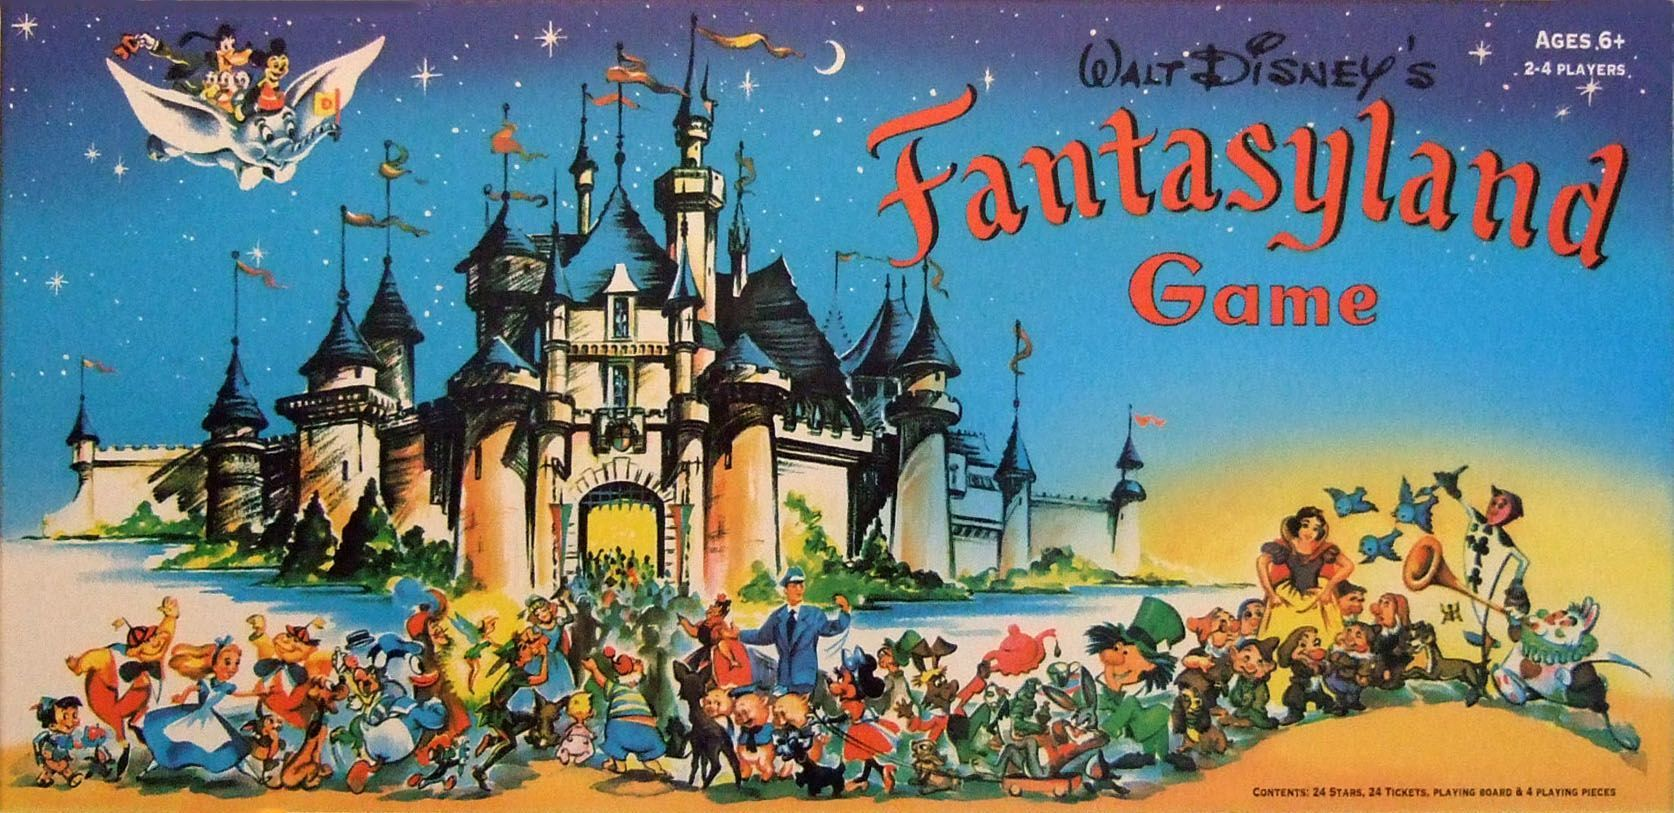 Walt Disney's Fantasyland Game